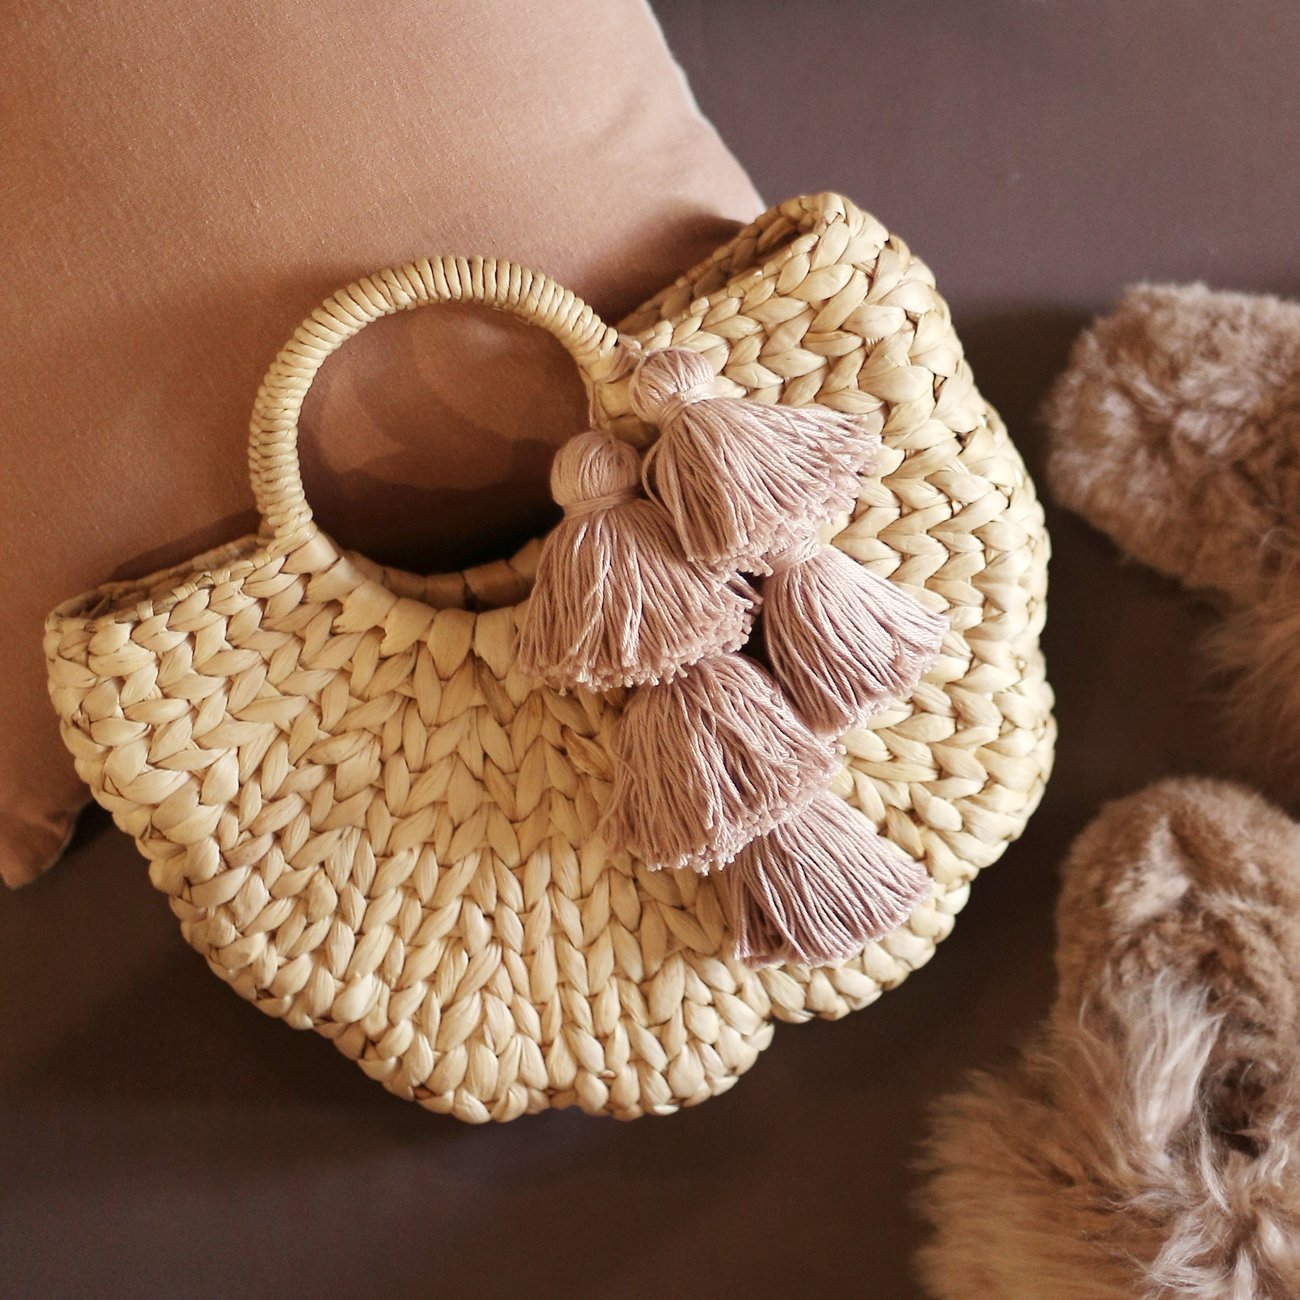 Shell Hyacinth Straw Bag, with Blush Tassels